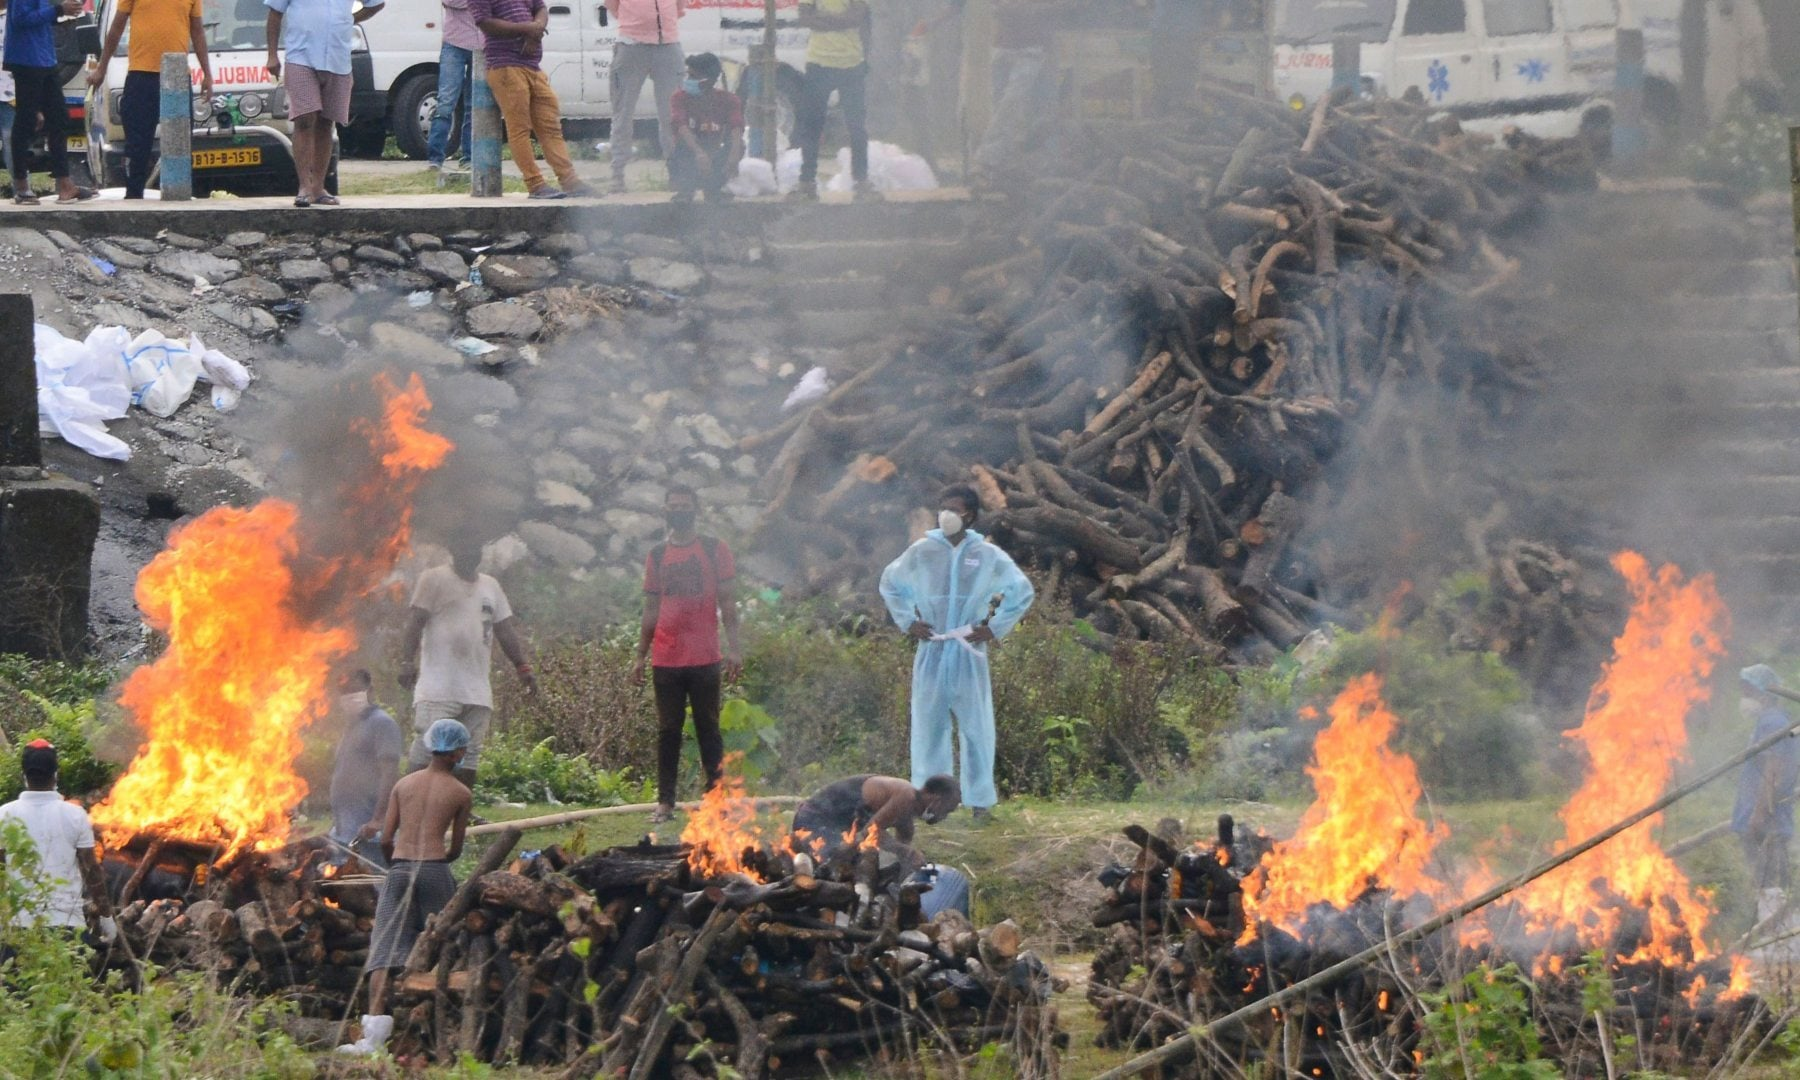 People watch the cremation of people who died due to the coronavirus at Sahudangi Crematorium, some 15km from Siliguri, India on May 4. — AFP